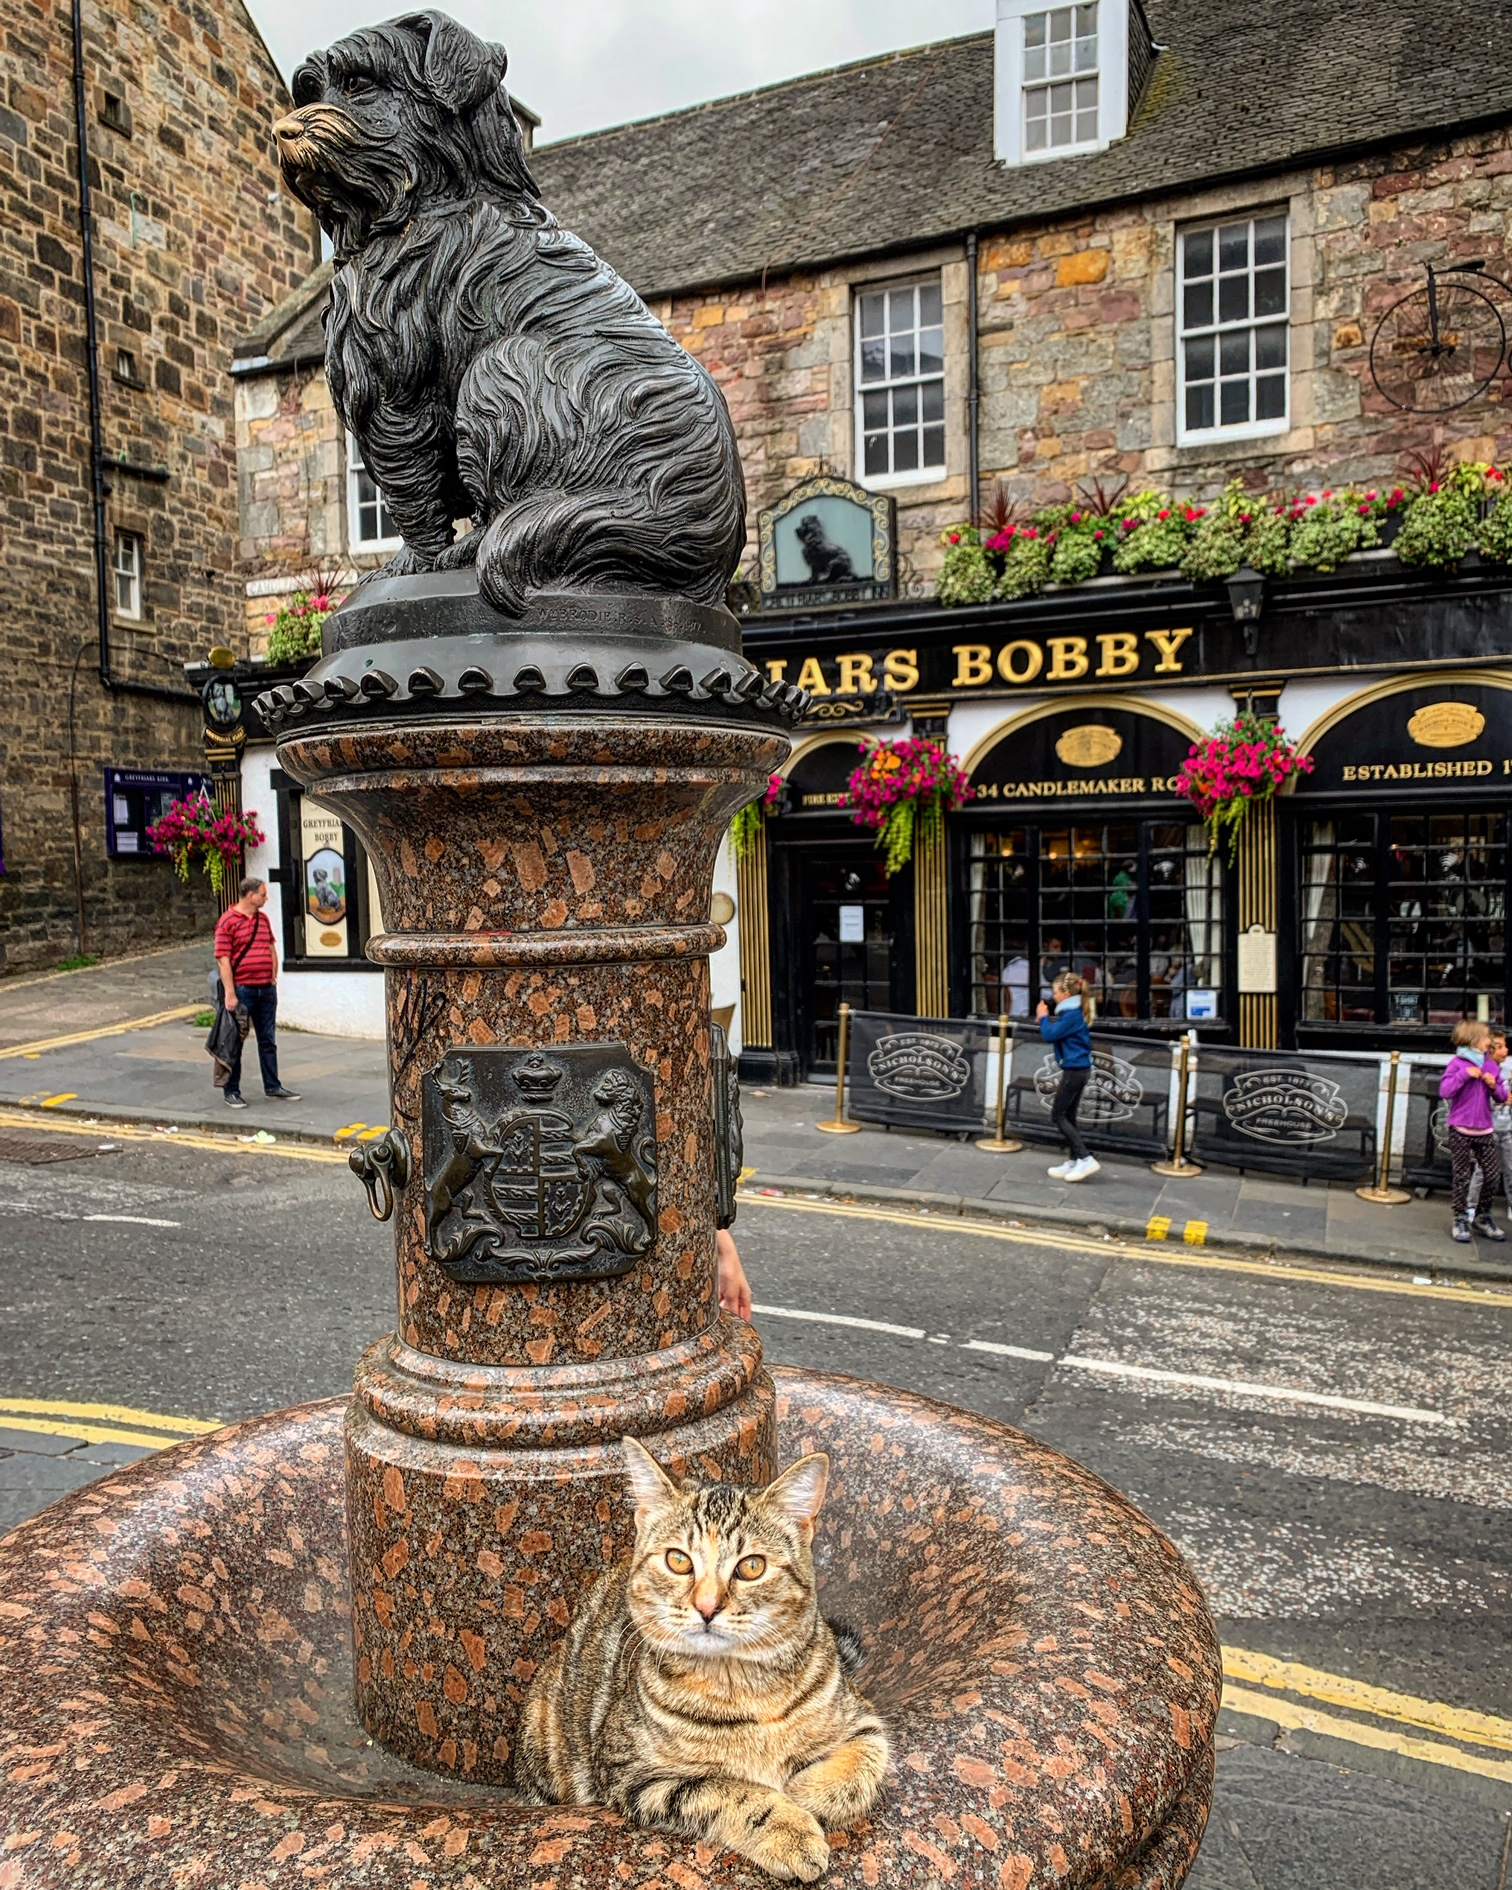 2019-07-19 (Quita the Kitty) Greyfriars Bobby